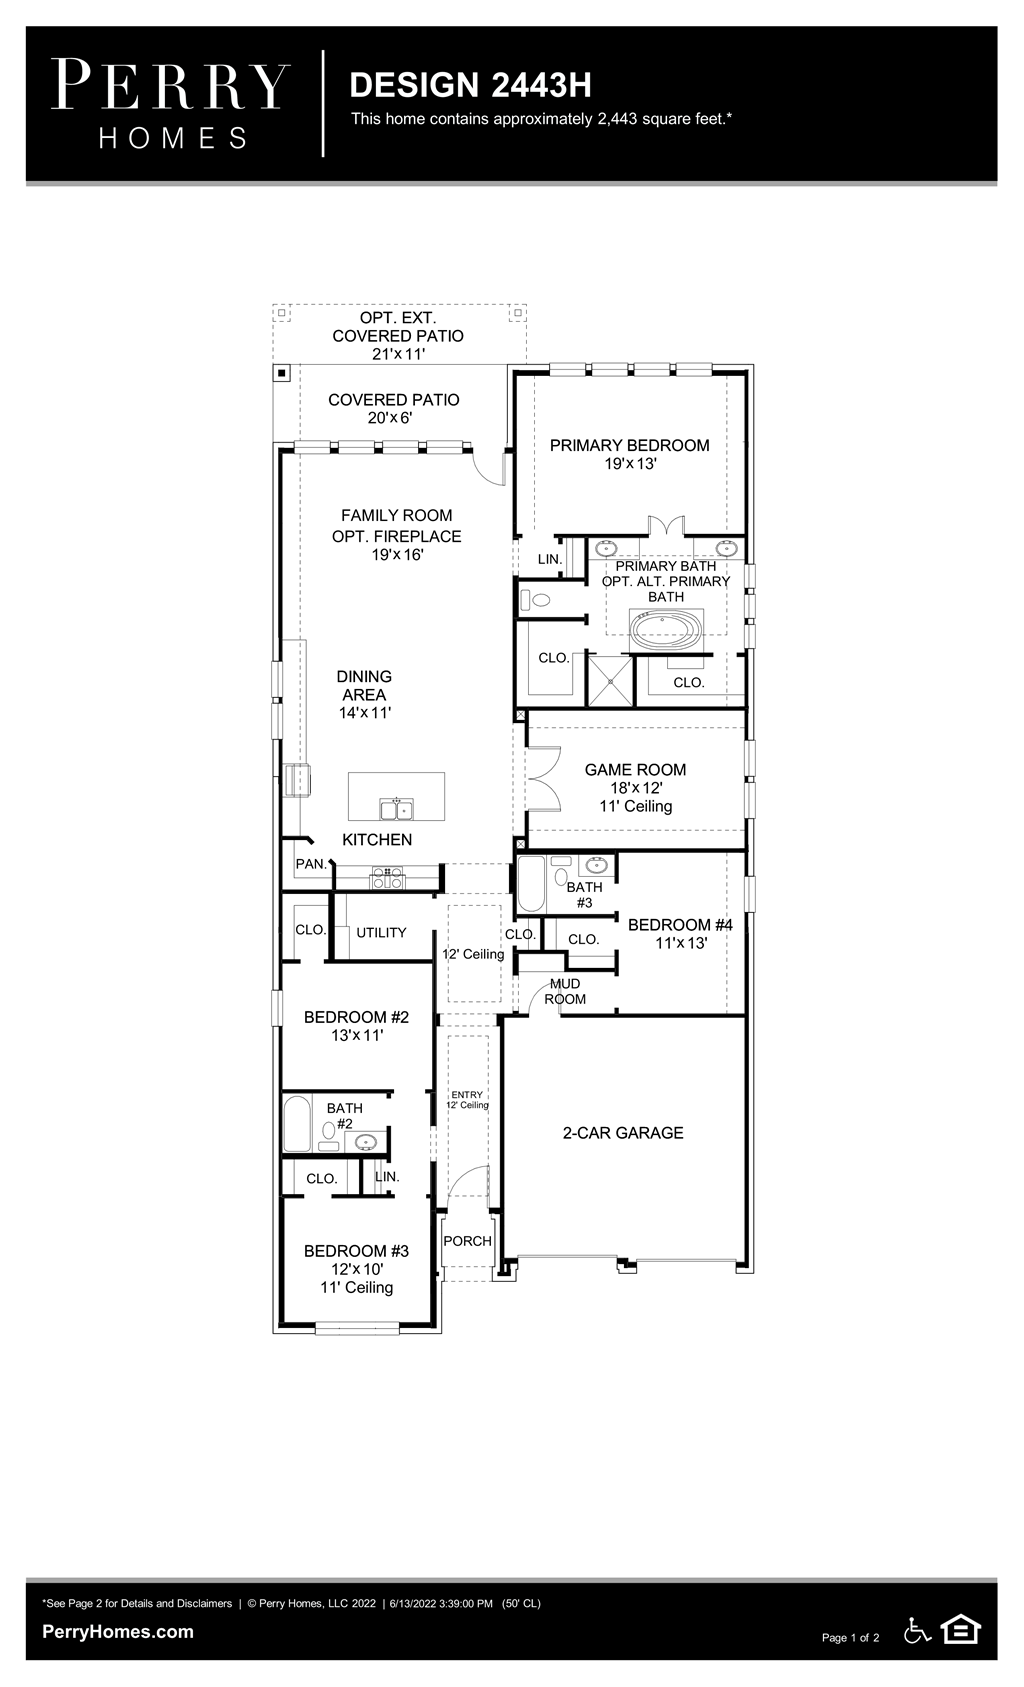 Floor Plan for 2443H